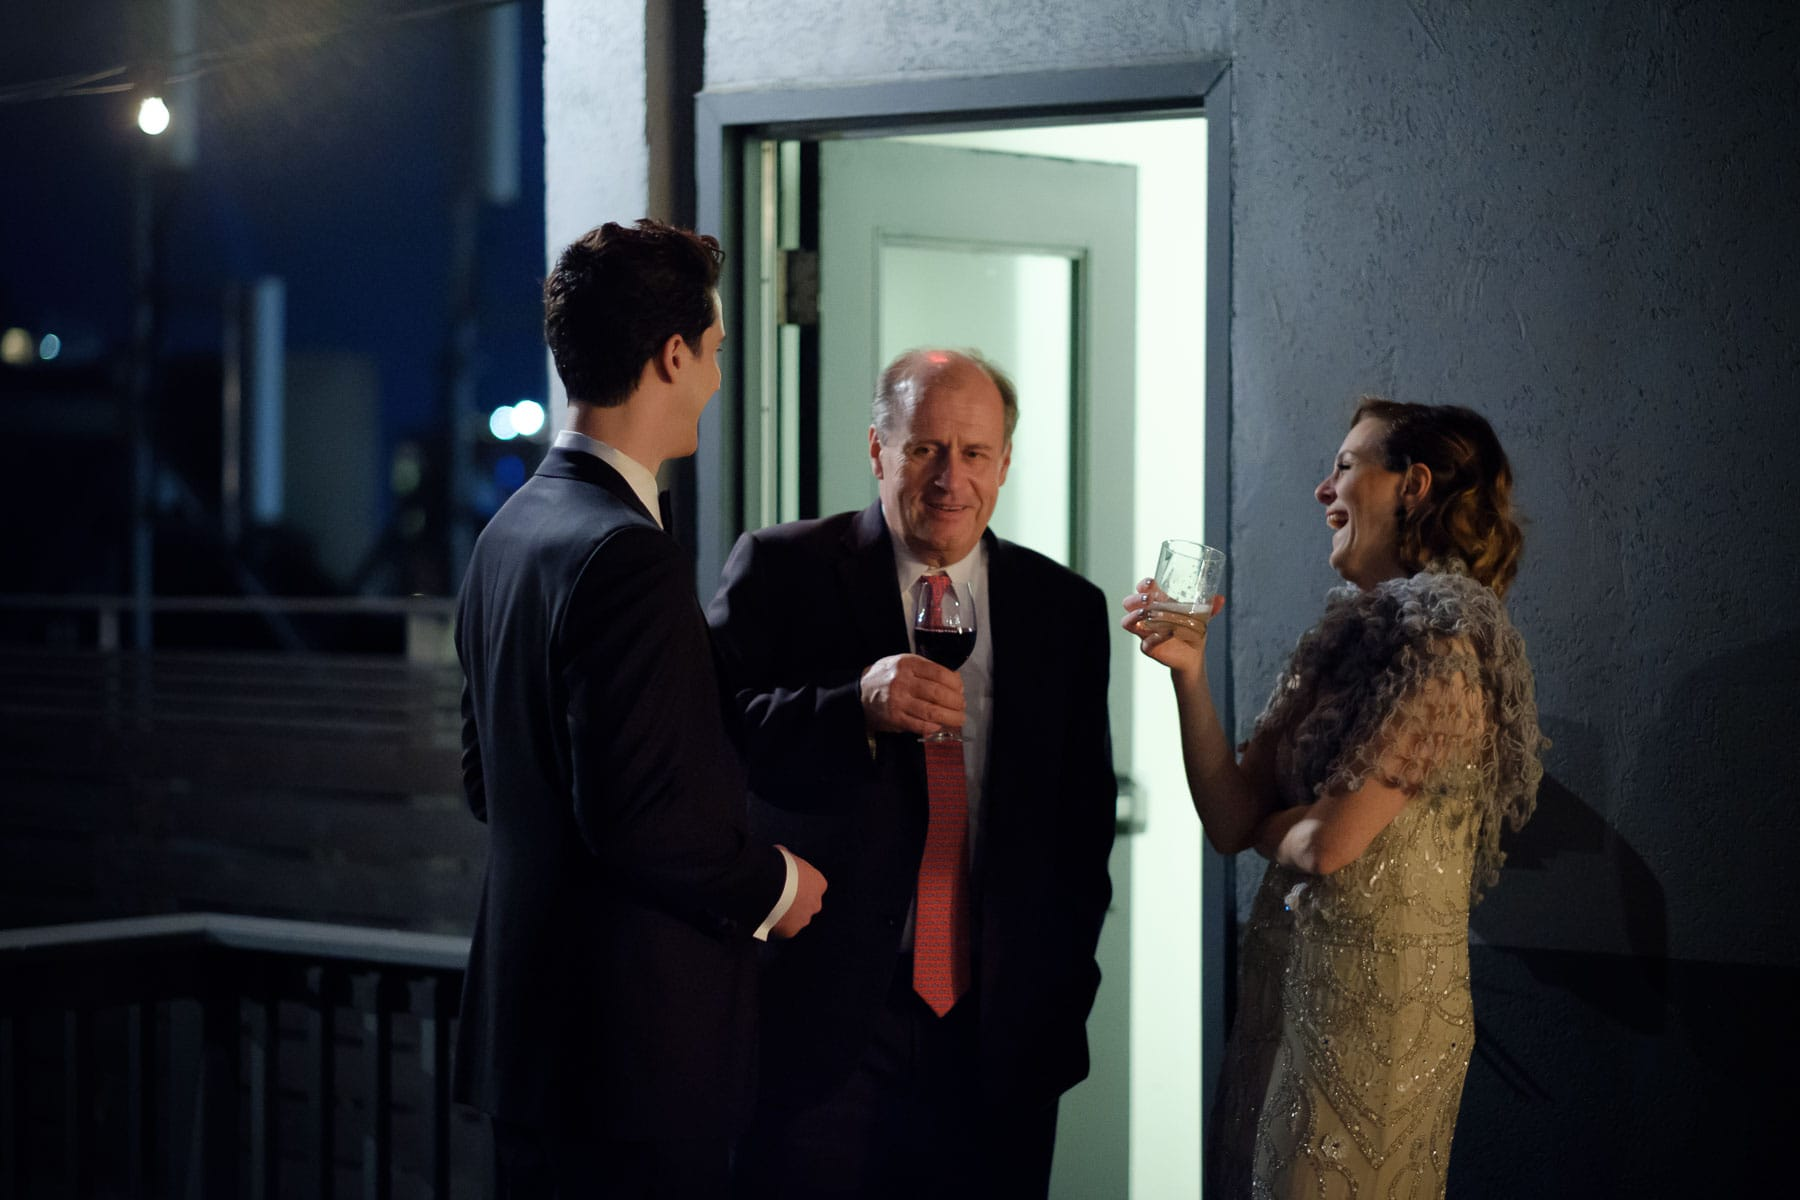 Bride and groom chat with a guest on the rooftop at The Burroughes building wedding.